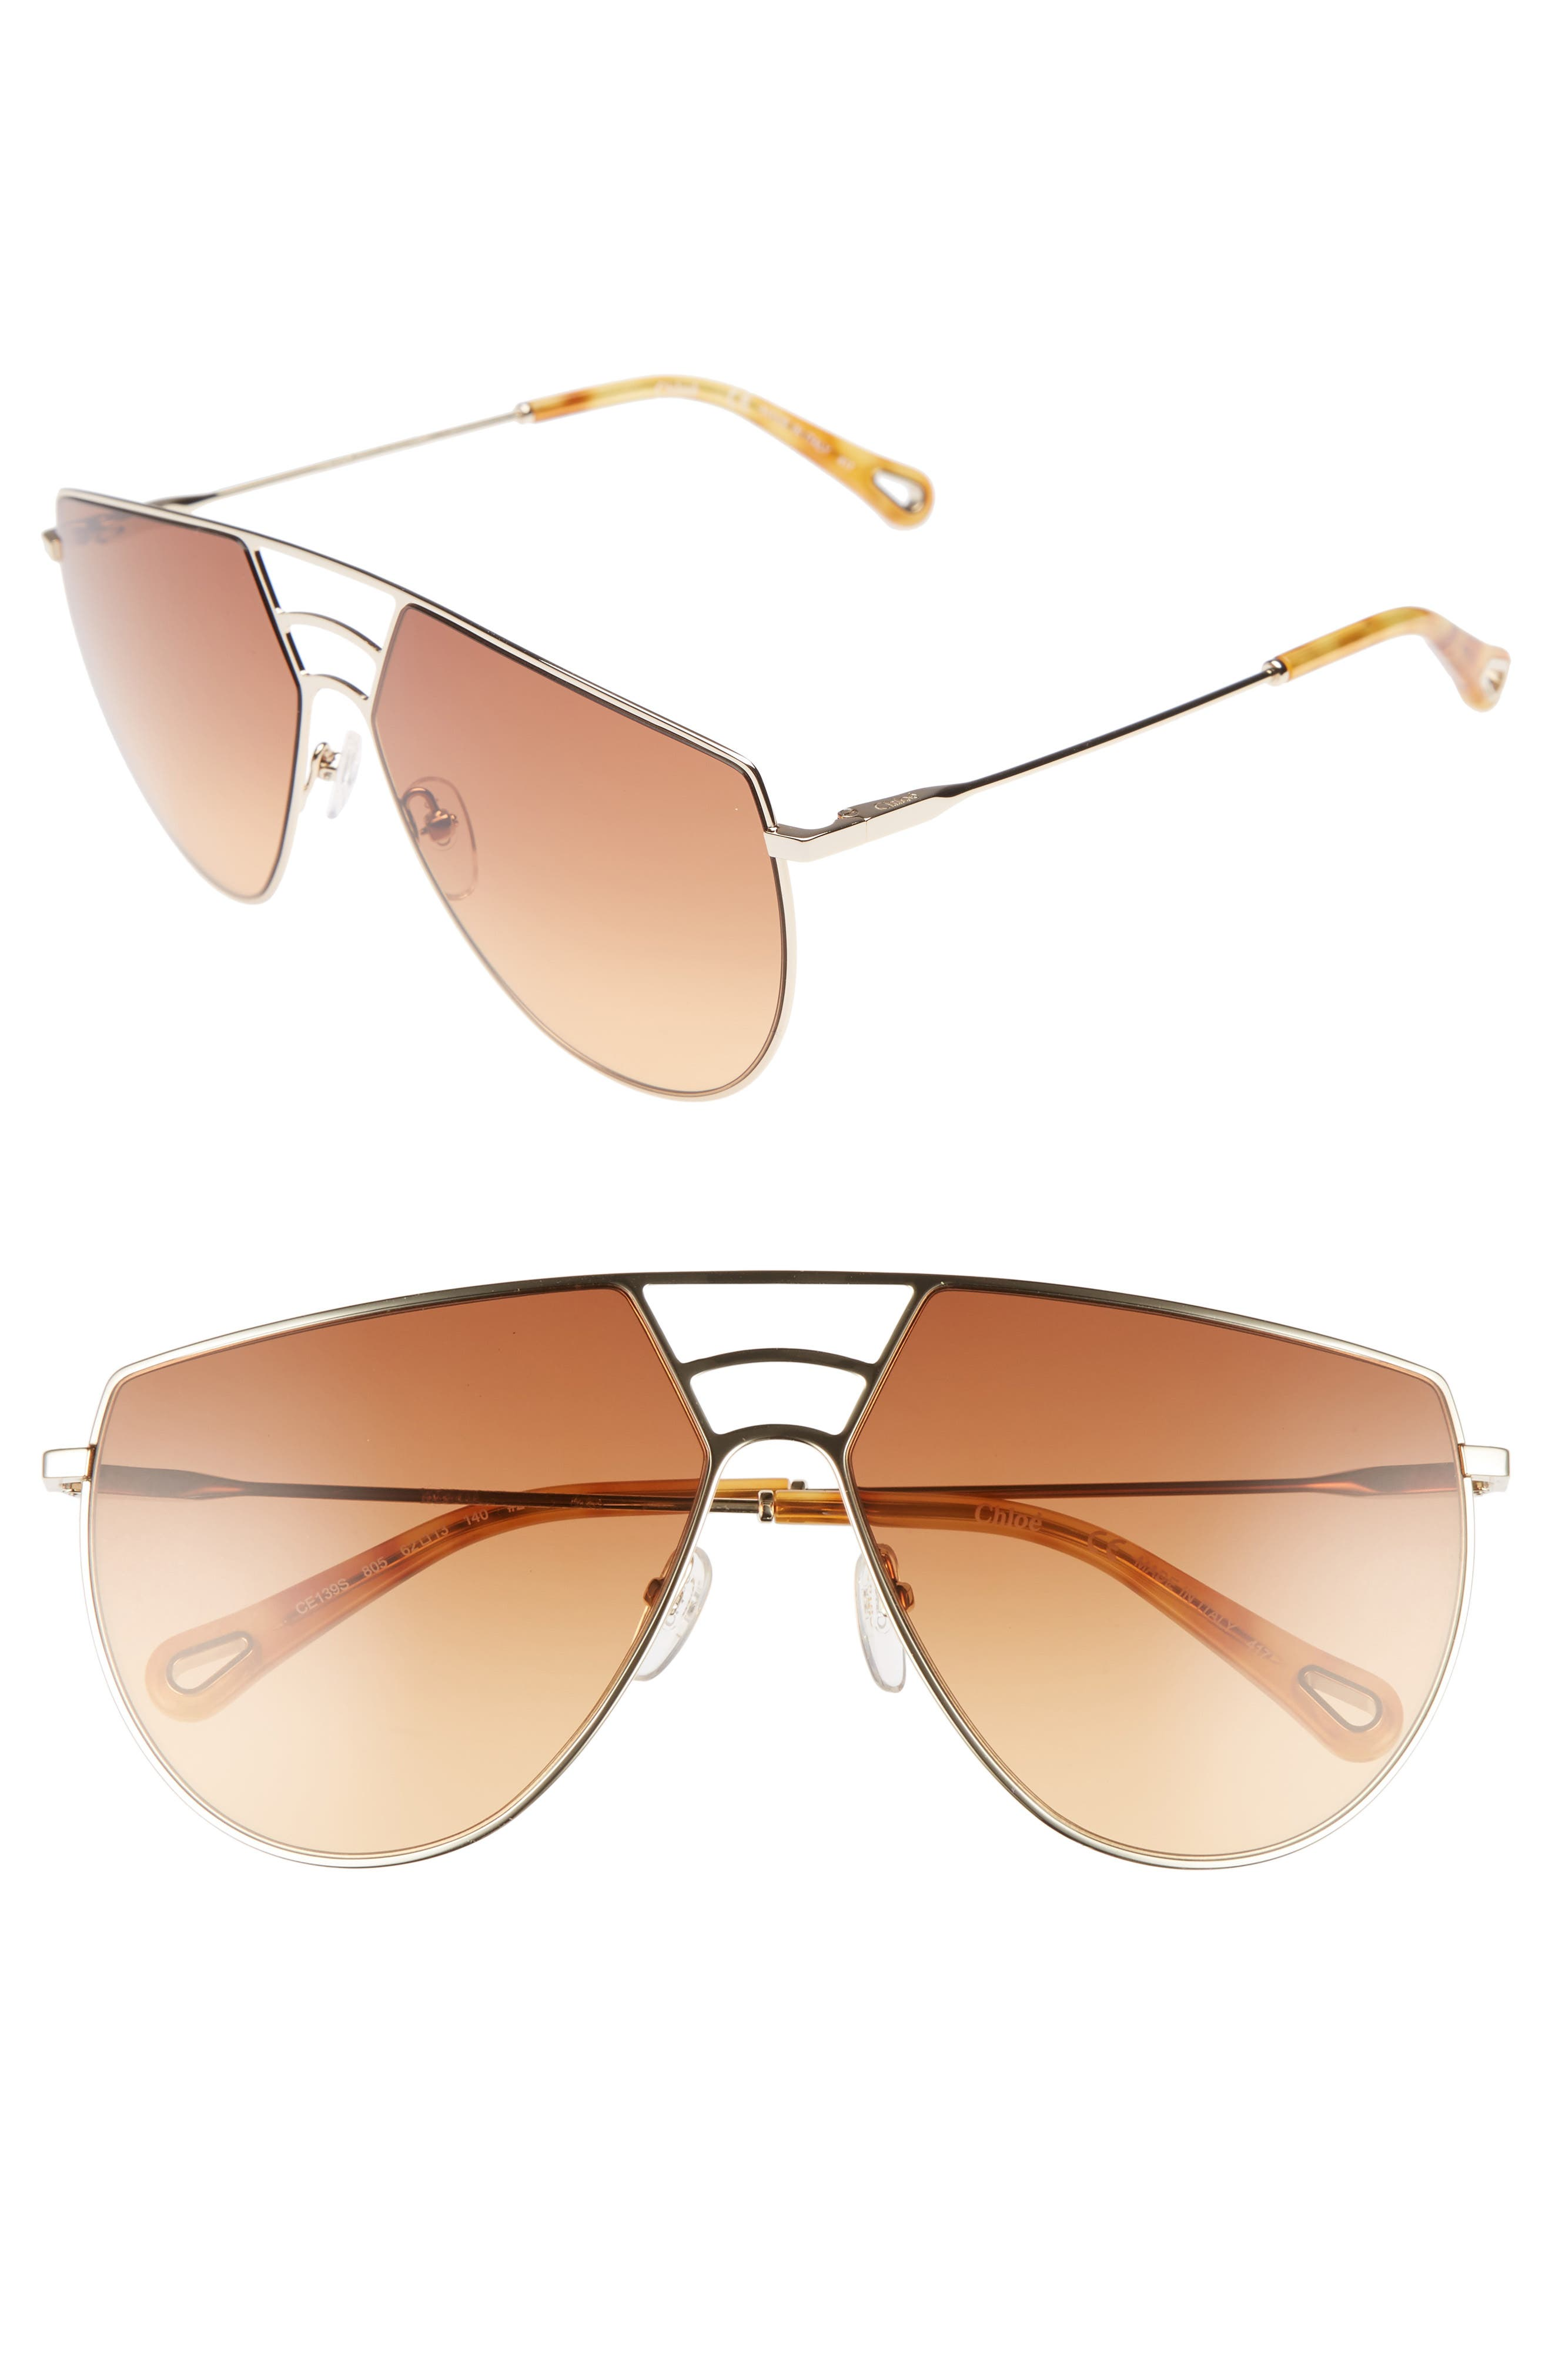 Negative Space 62mm Oversize Aviator Sunglasses,                             Main thumbnail 1, color,                             Gold/ Burnt